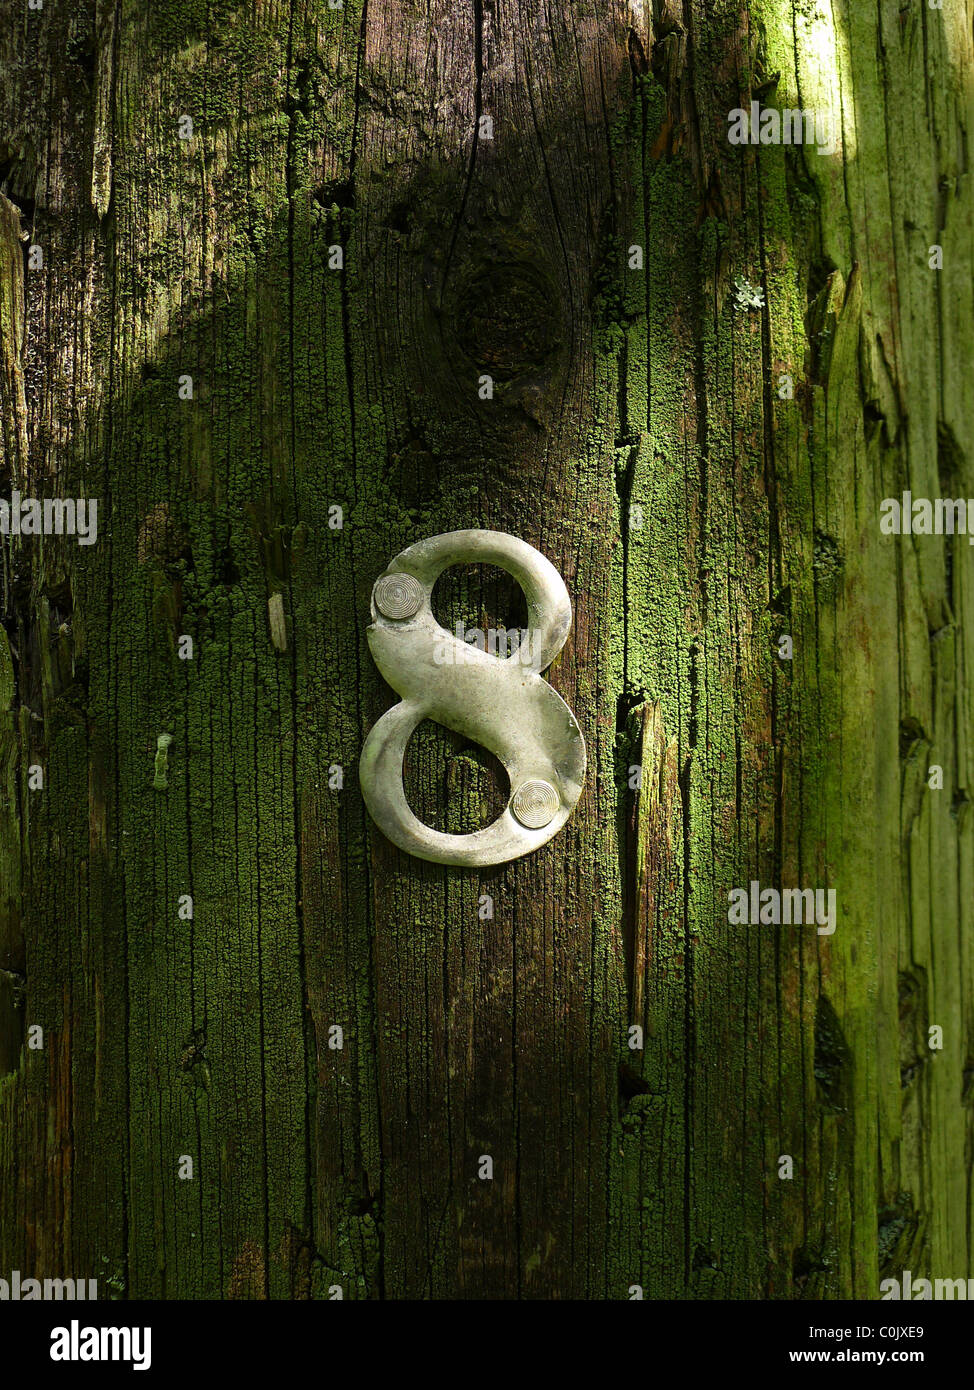 Number eight on telephone pole - Stock Image